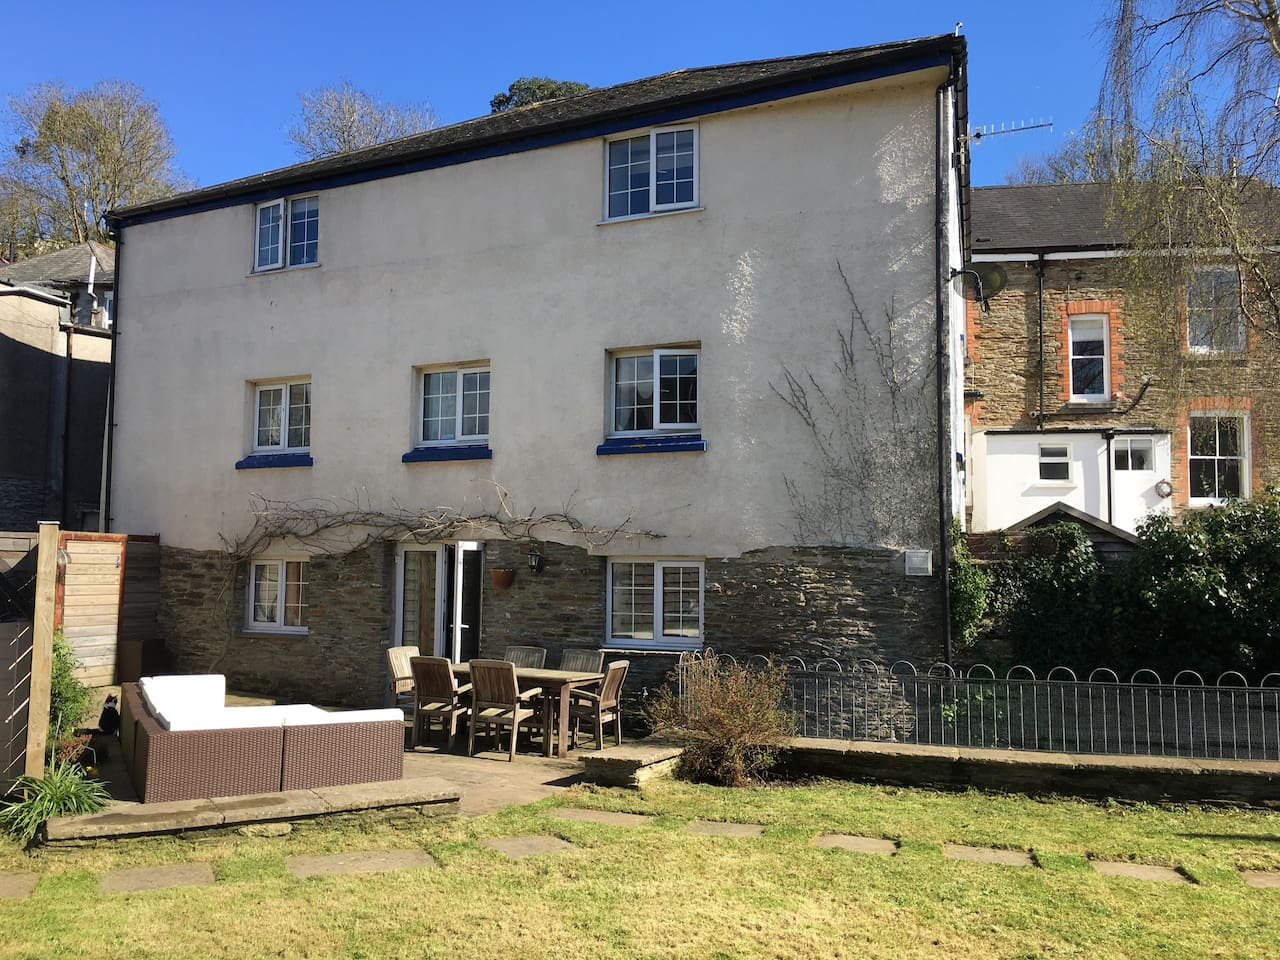 Rear of house with patio and garden furniture.